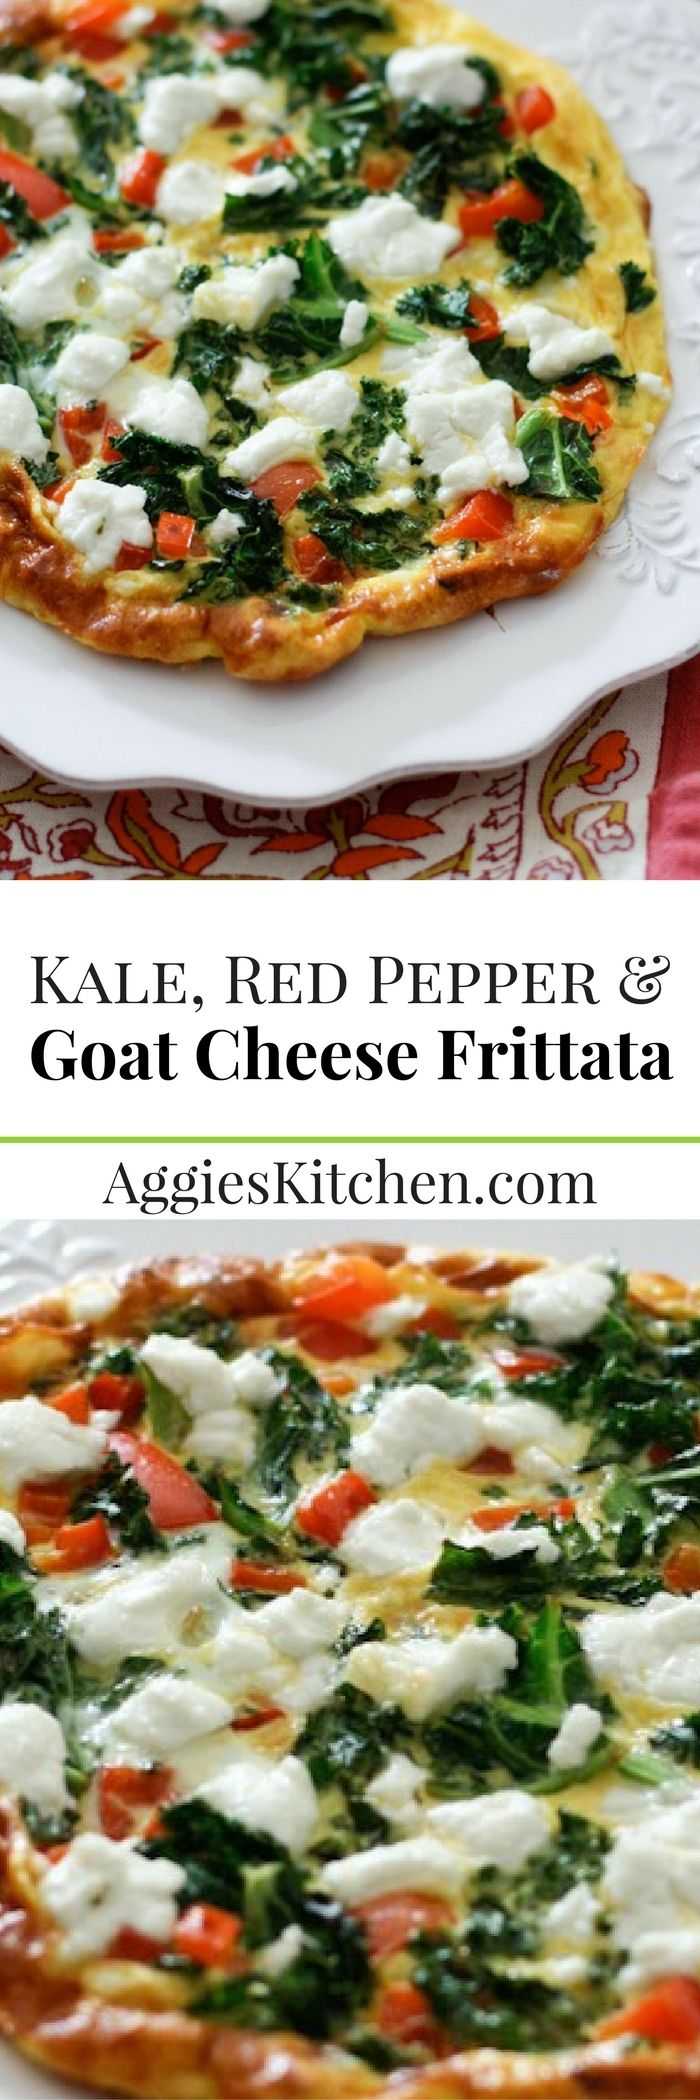 A light vegetarian option, this Kale, Red Pepper and Goat Cheese Frittata is great for breakfast, lunch or dinner.